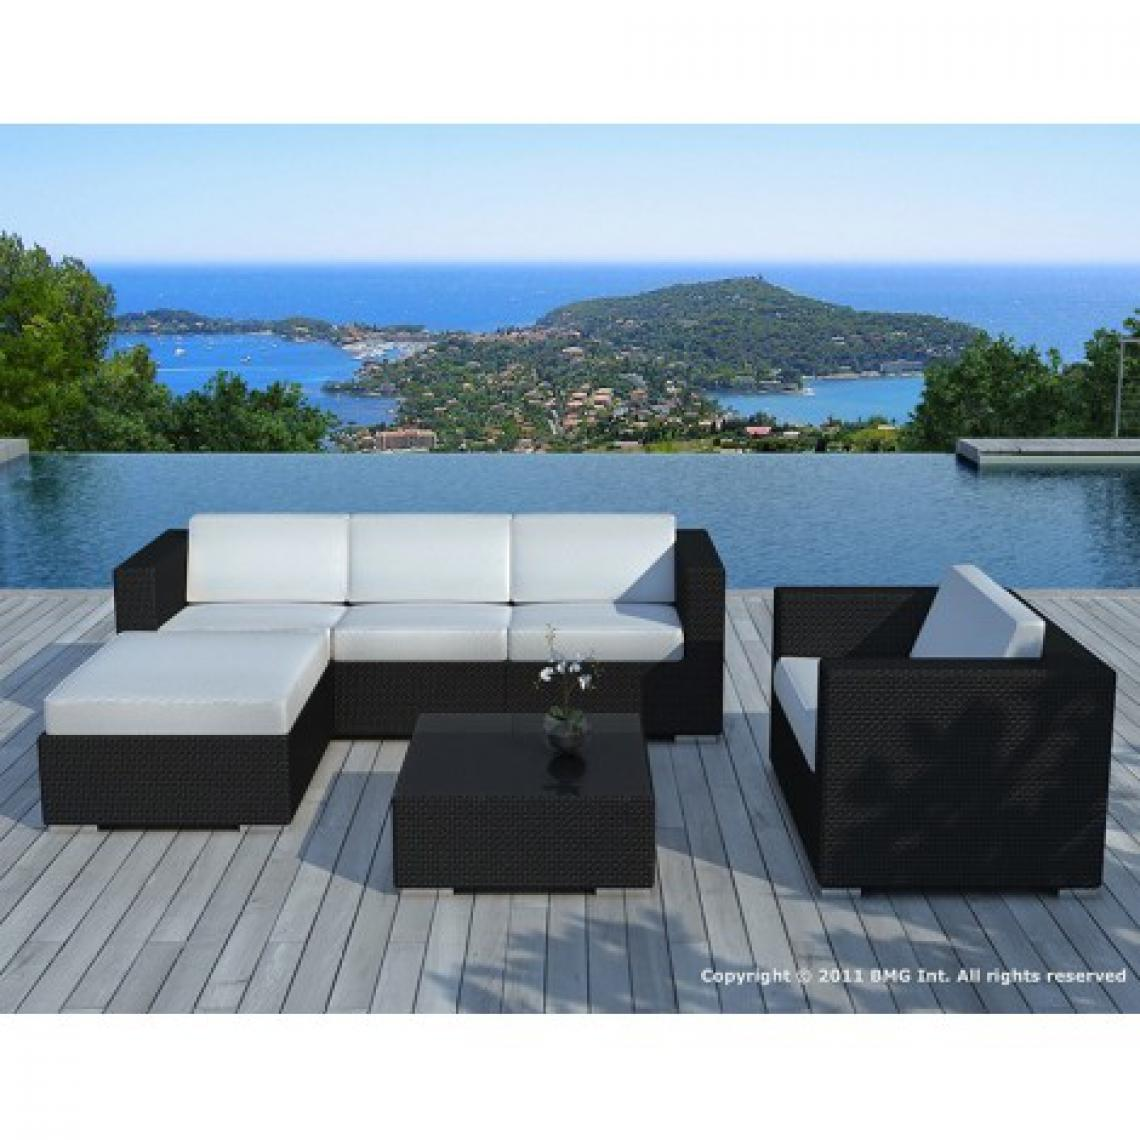 LOT DE 2 TABOURETS DE BAR BLUE LAGOON - BLANC 85777 85779